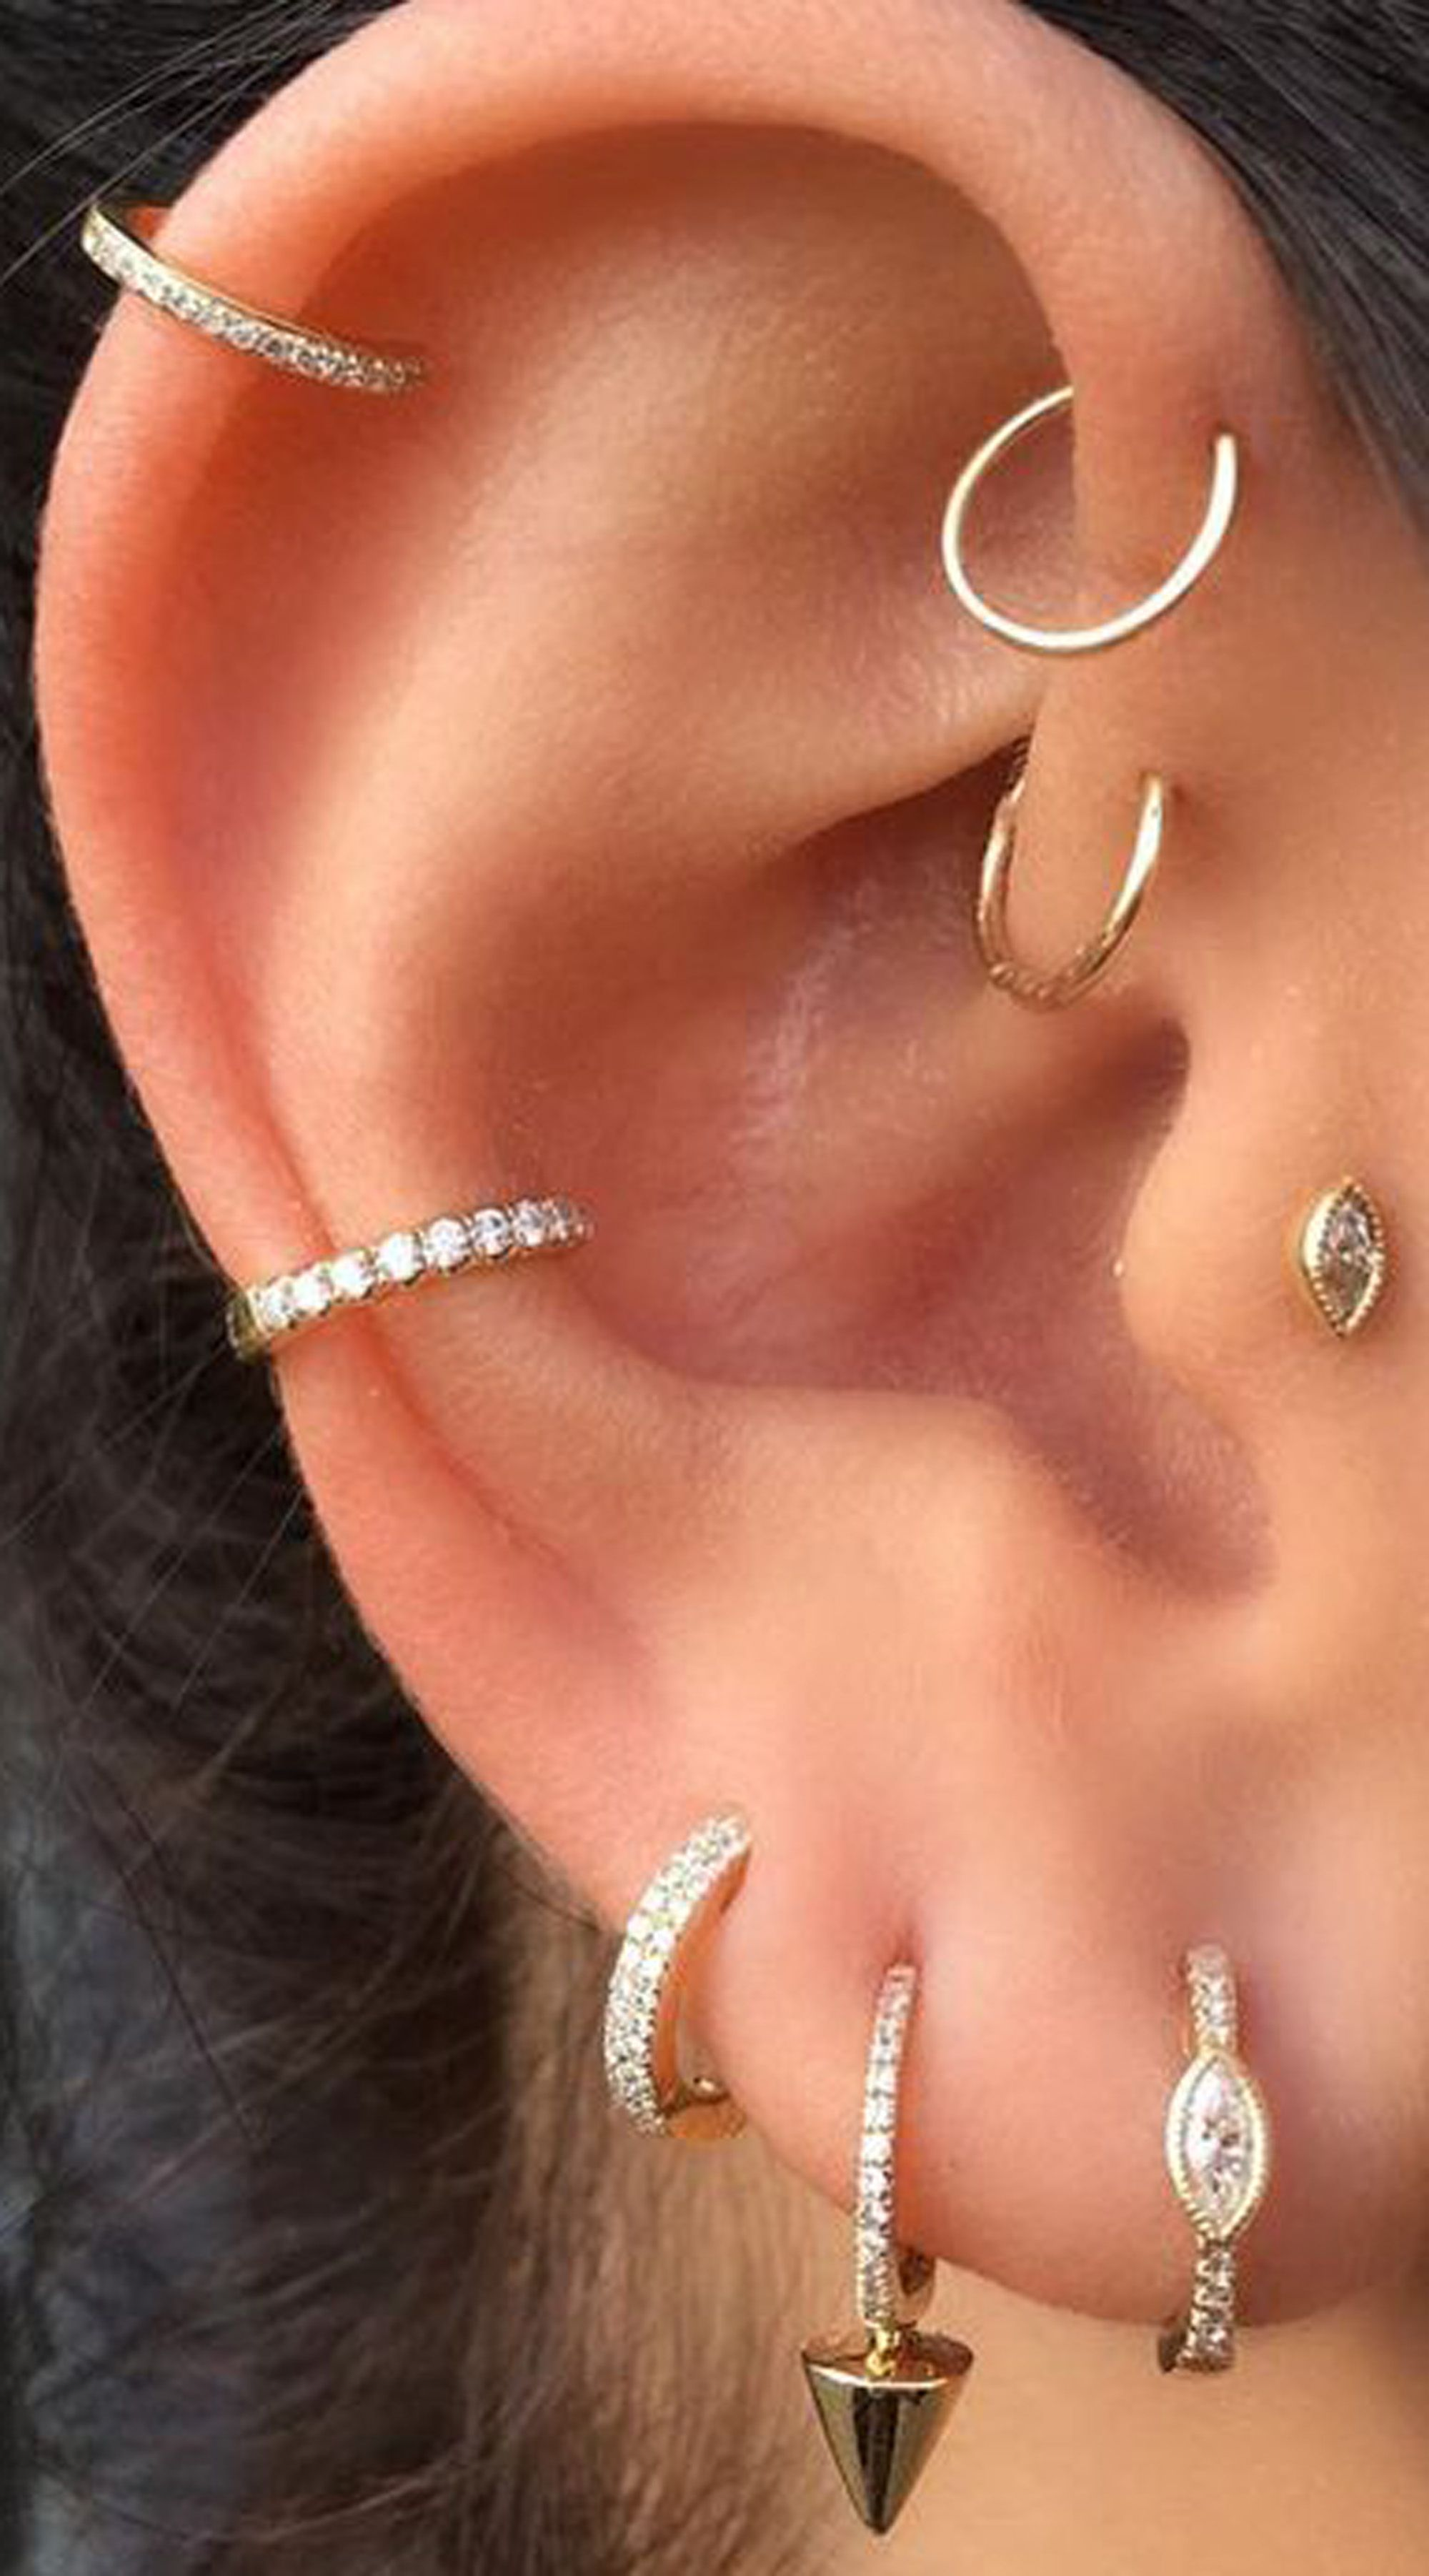 Arianna Crystal Nose  Ear Piercing Earring G Ring in Silver